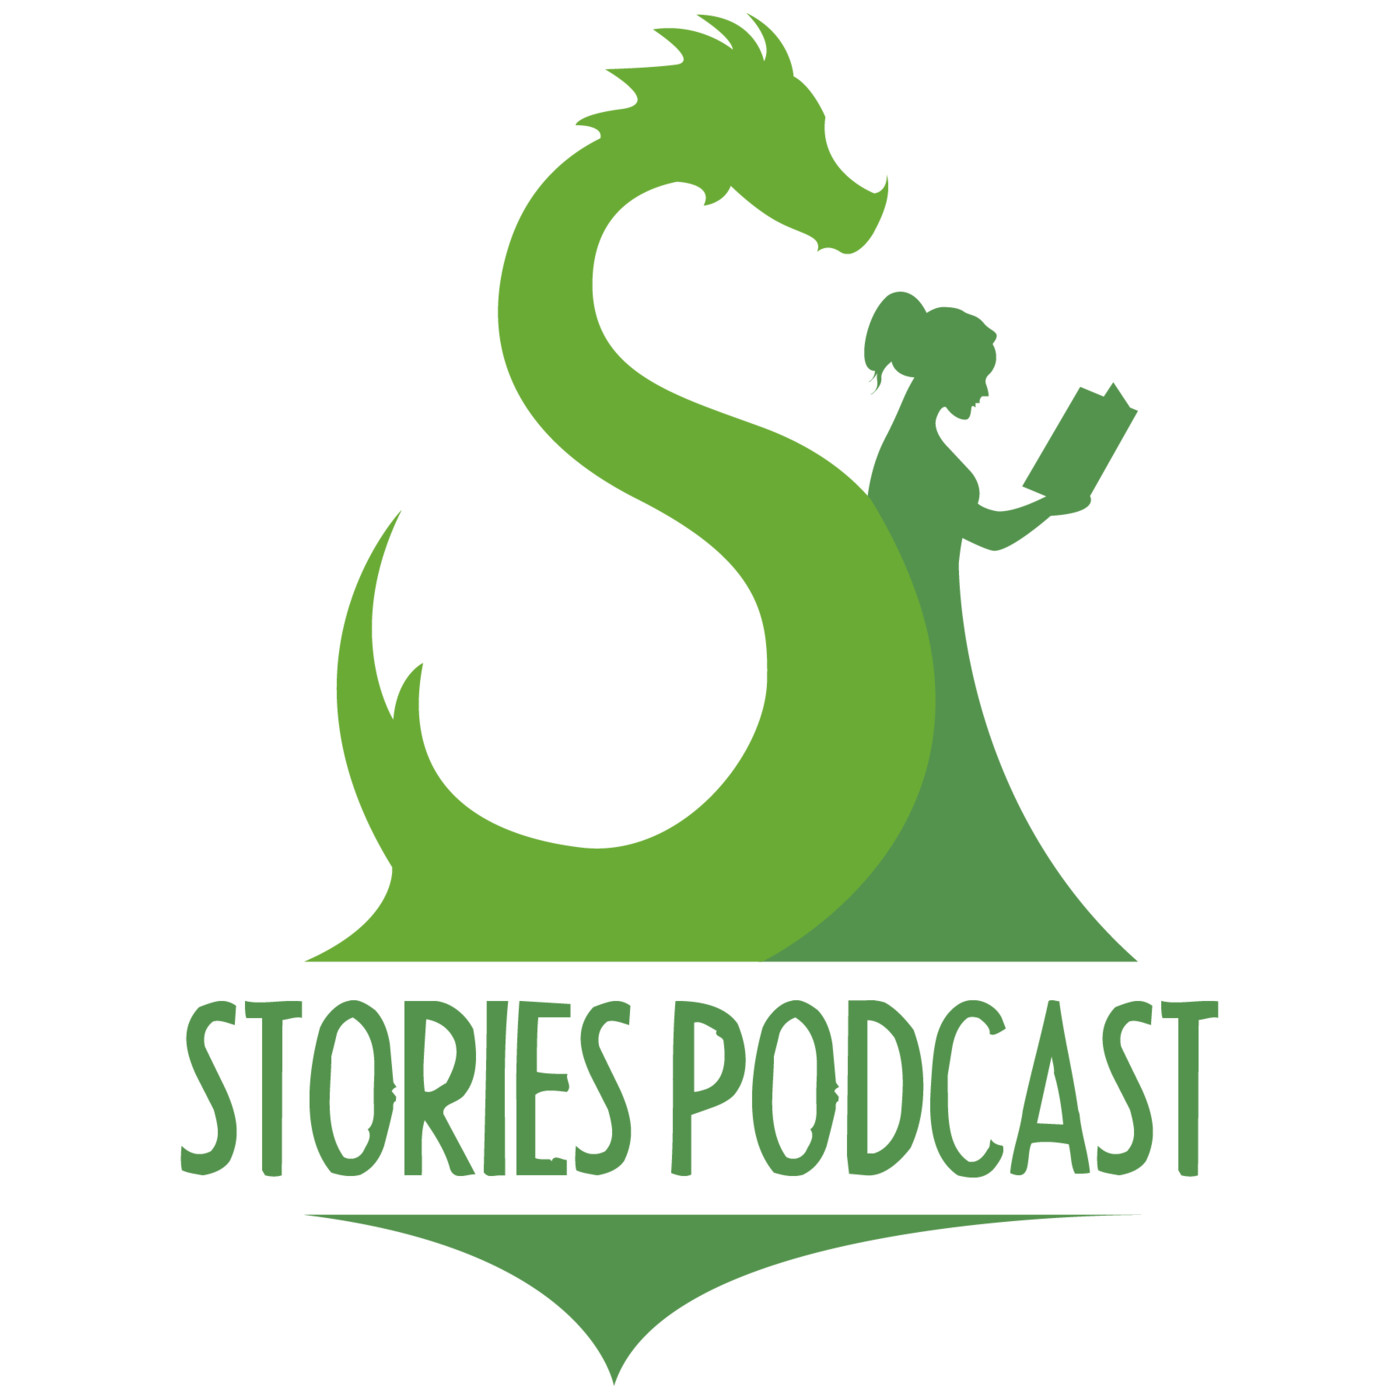 Kids Listen: Stories Podcast - A Free Children's Story